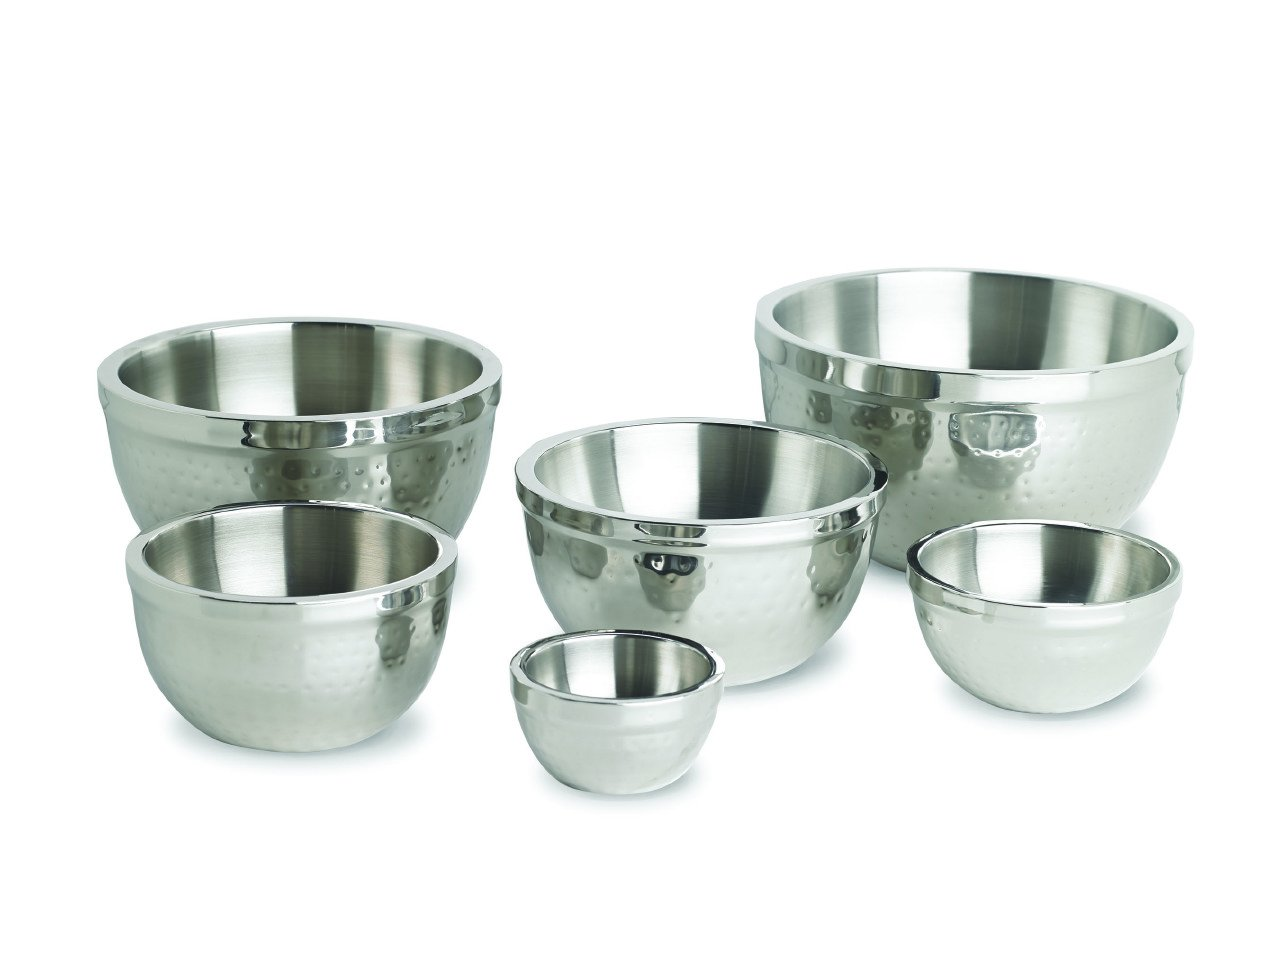 Artisan Insulated, Double-Wall Stainless Steel Serving Bowl, 8-Quart Capacity by Artisan (Image #2)